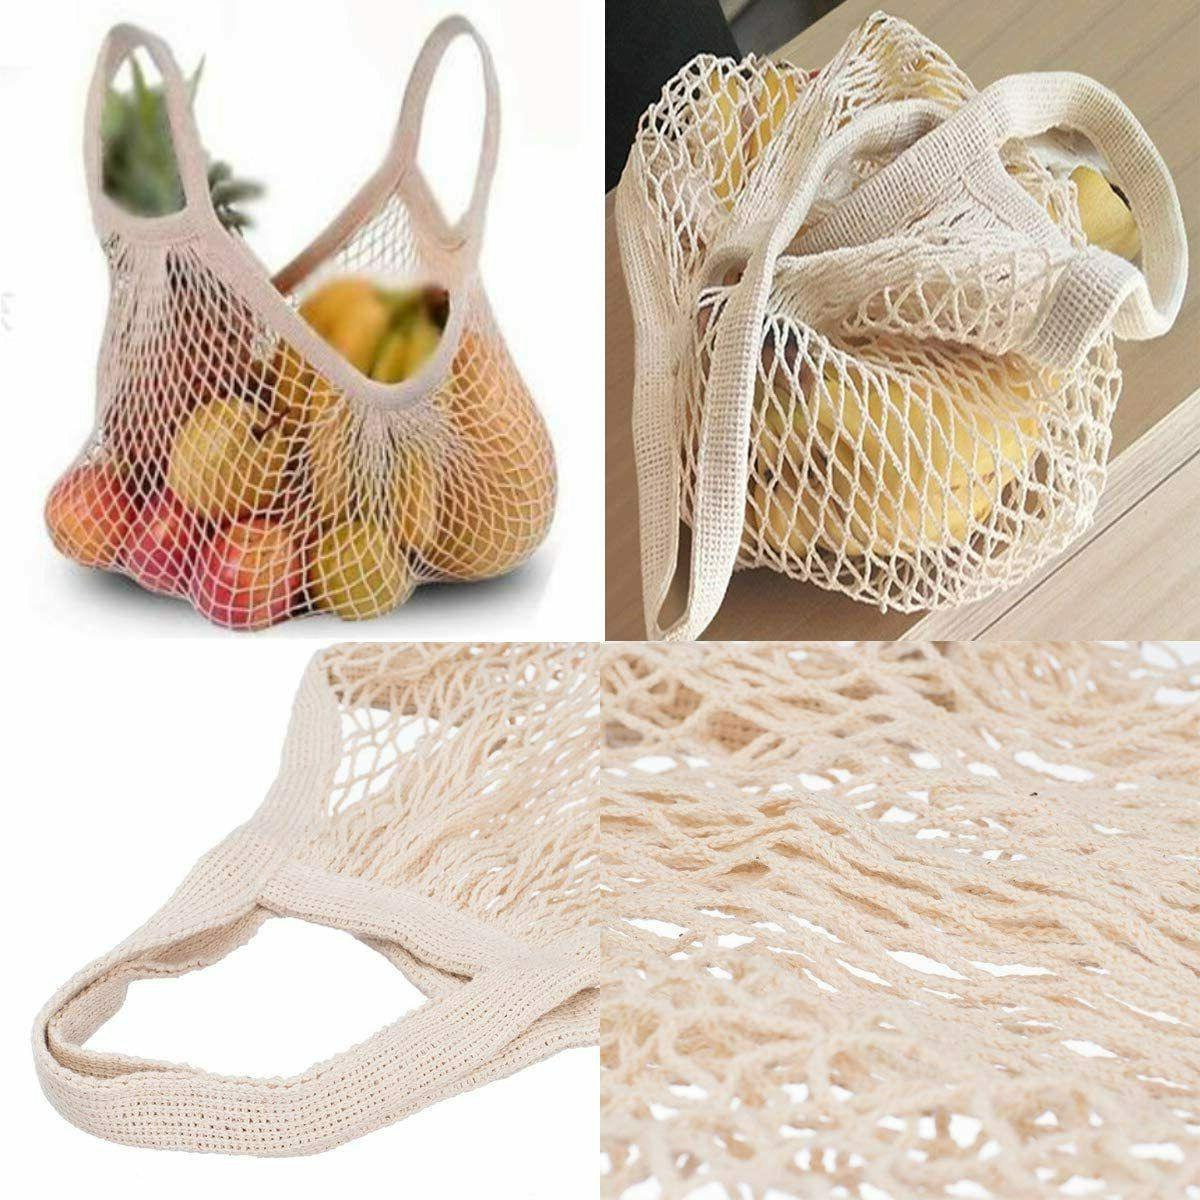 Reusable Mesh Cotton String Shopping